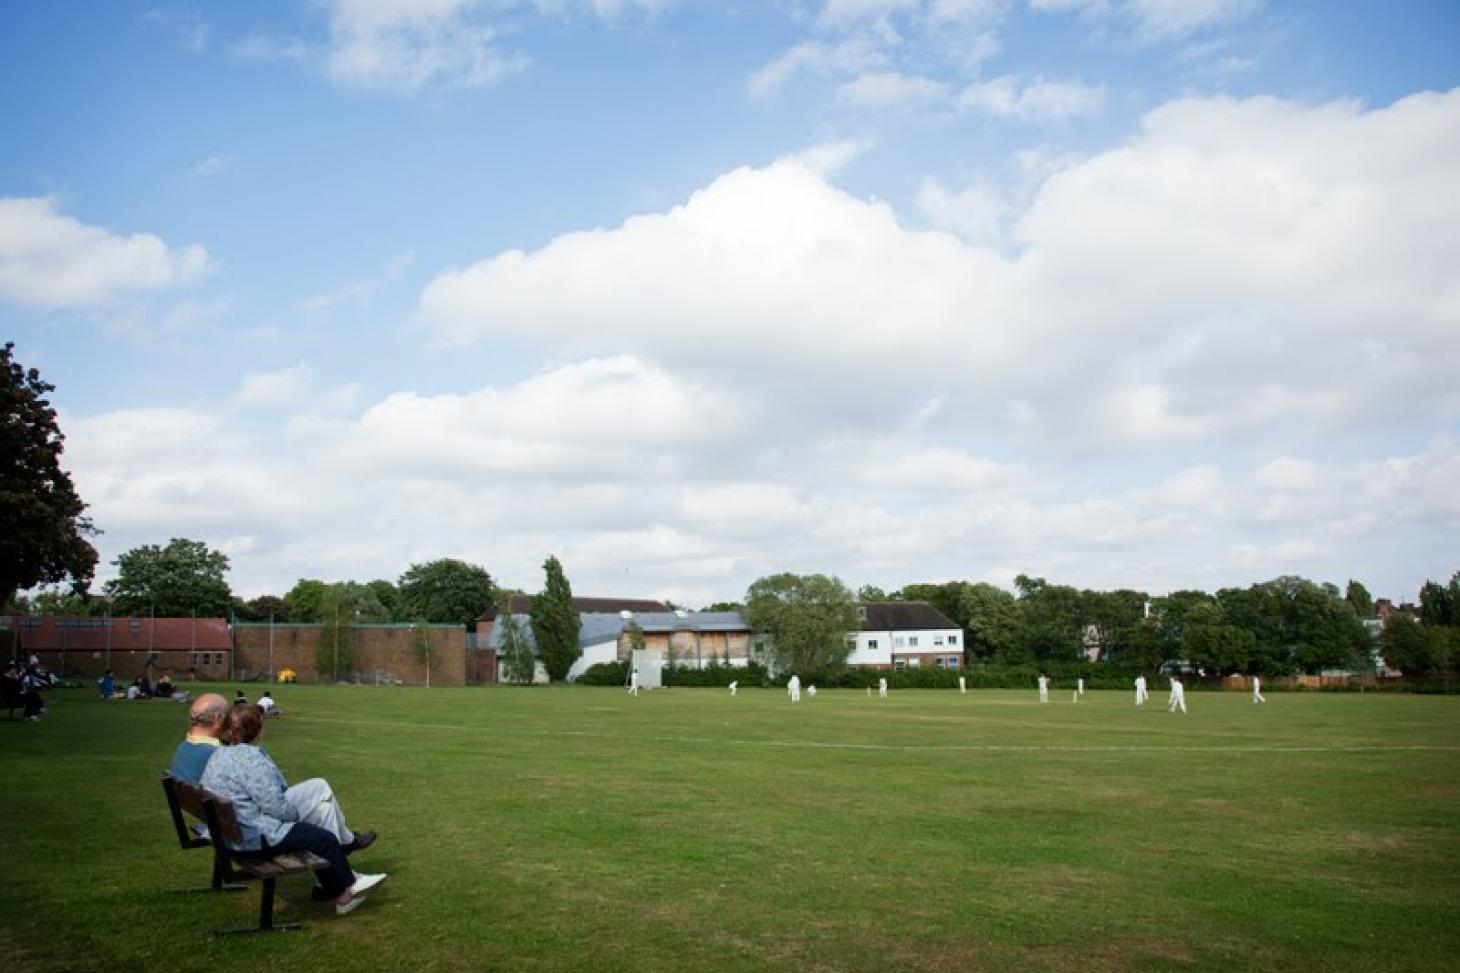 Parliament Hill Nets | Artificial cricket facilities